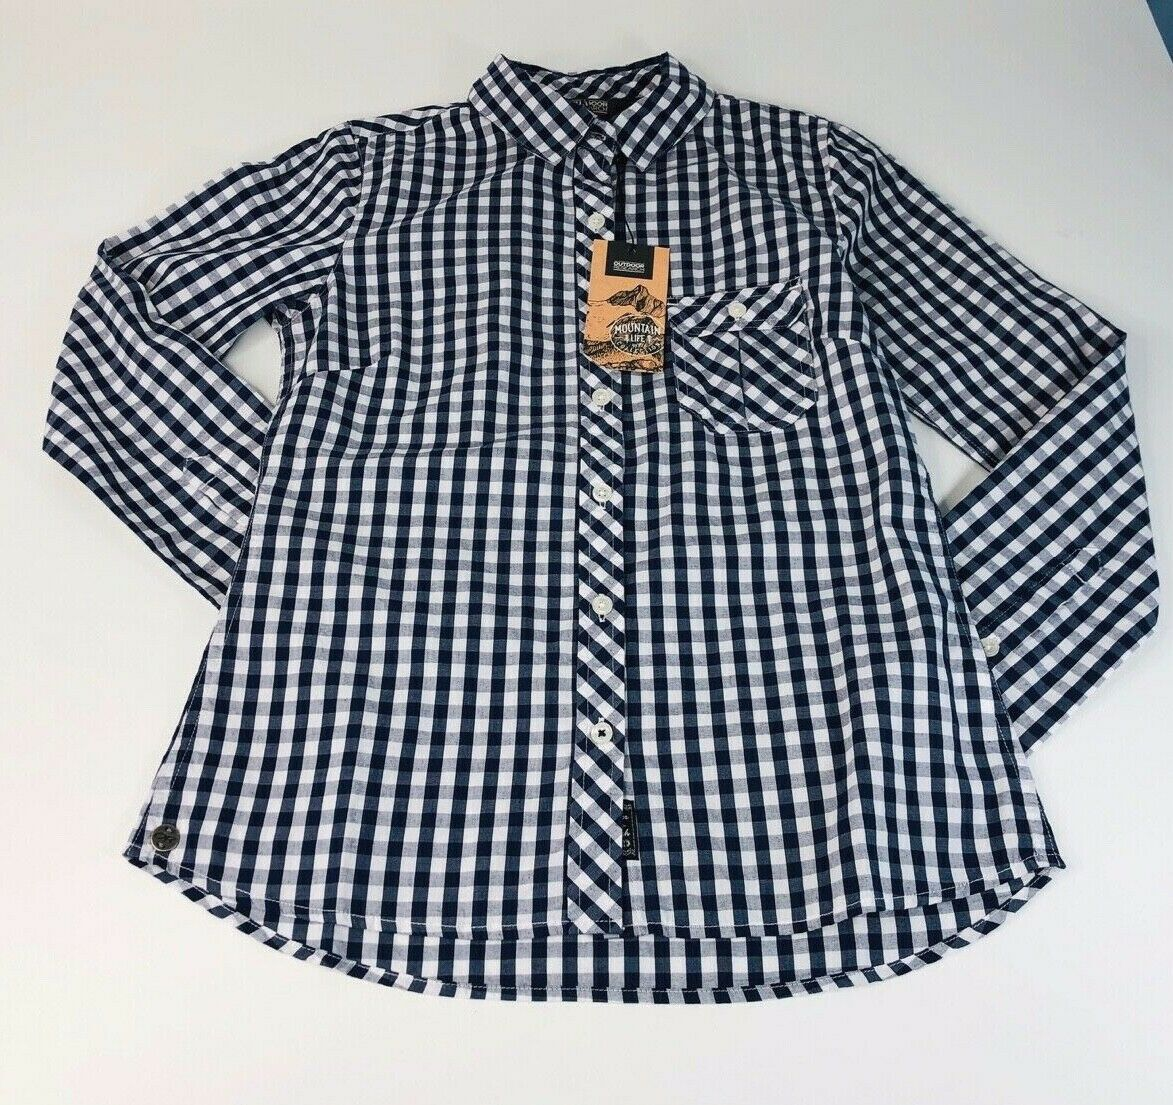 Outdoor research womens chelsea long sleeve shirt size XS color night